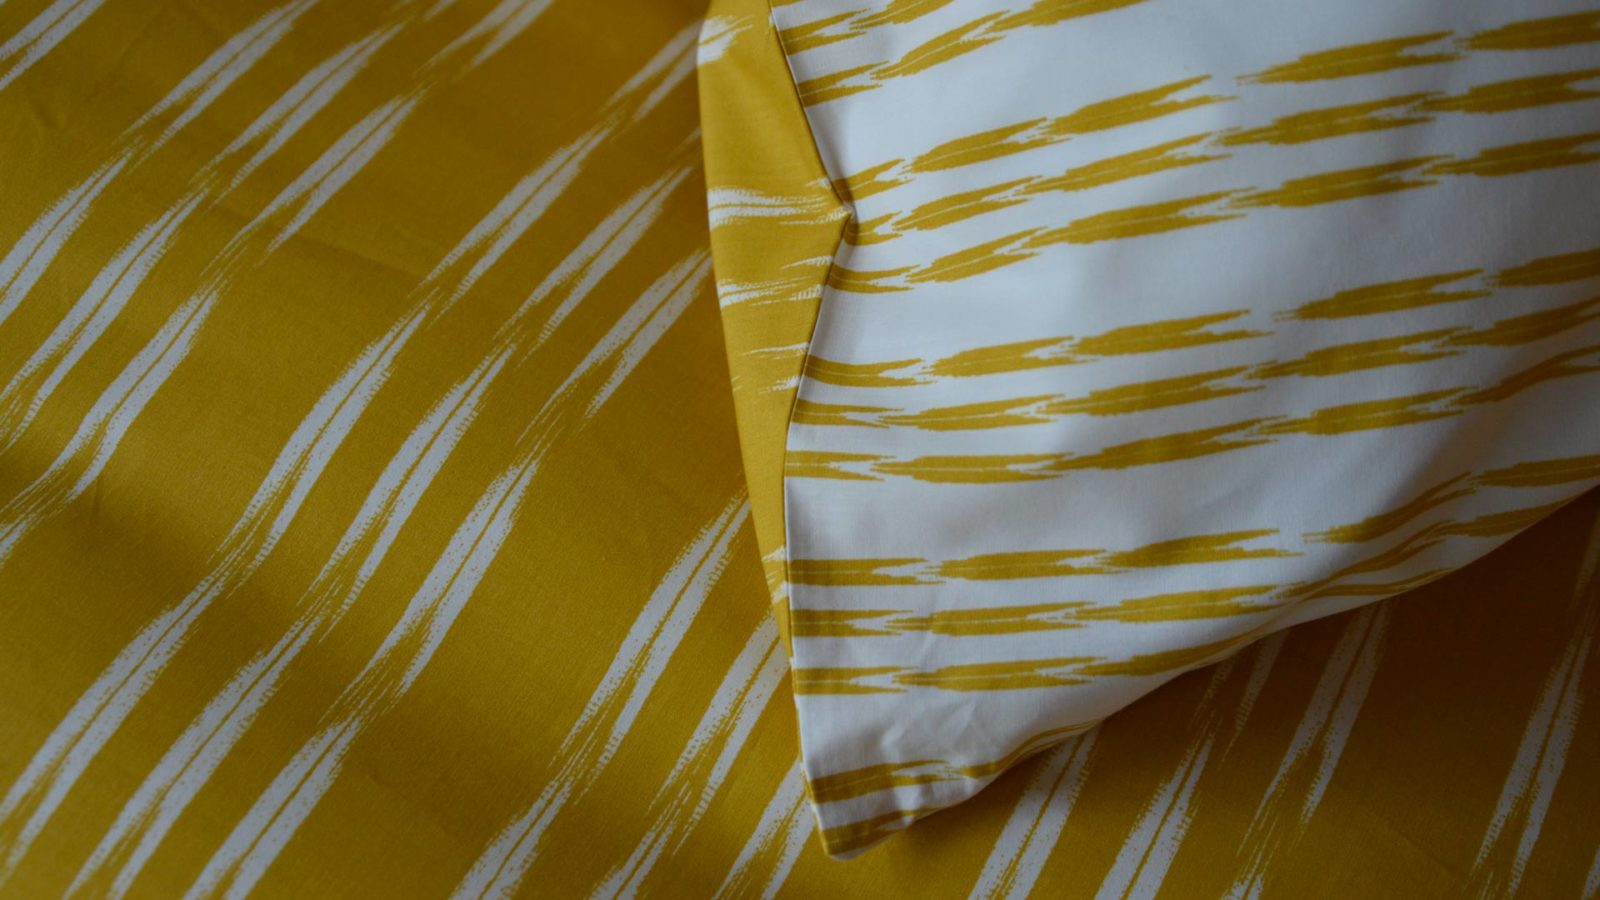 ikat-stripe-pattern-detail-in-ochre-and-white